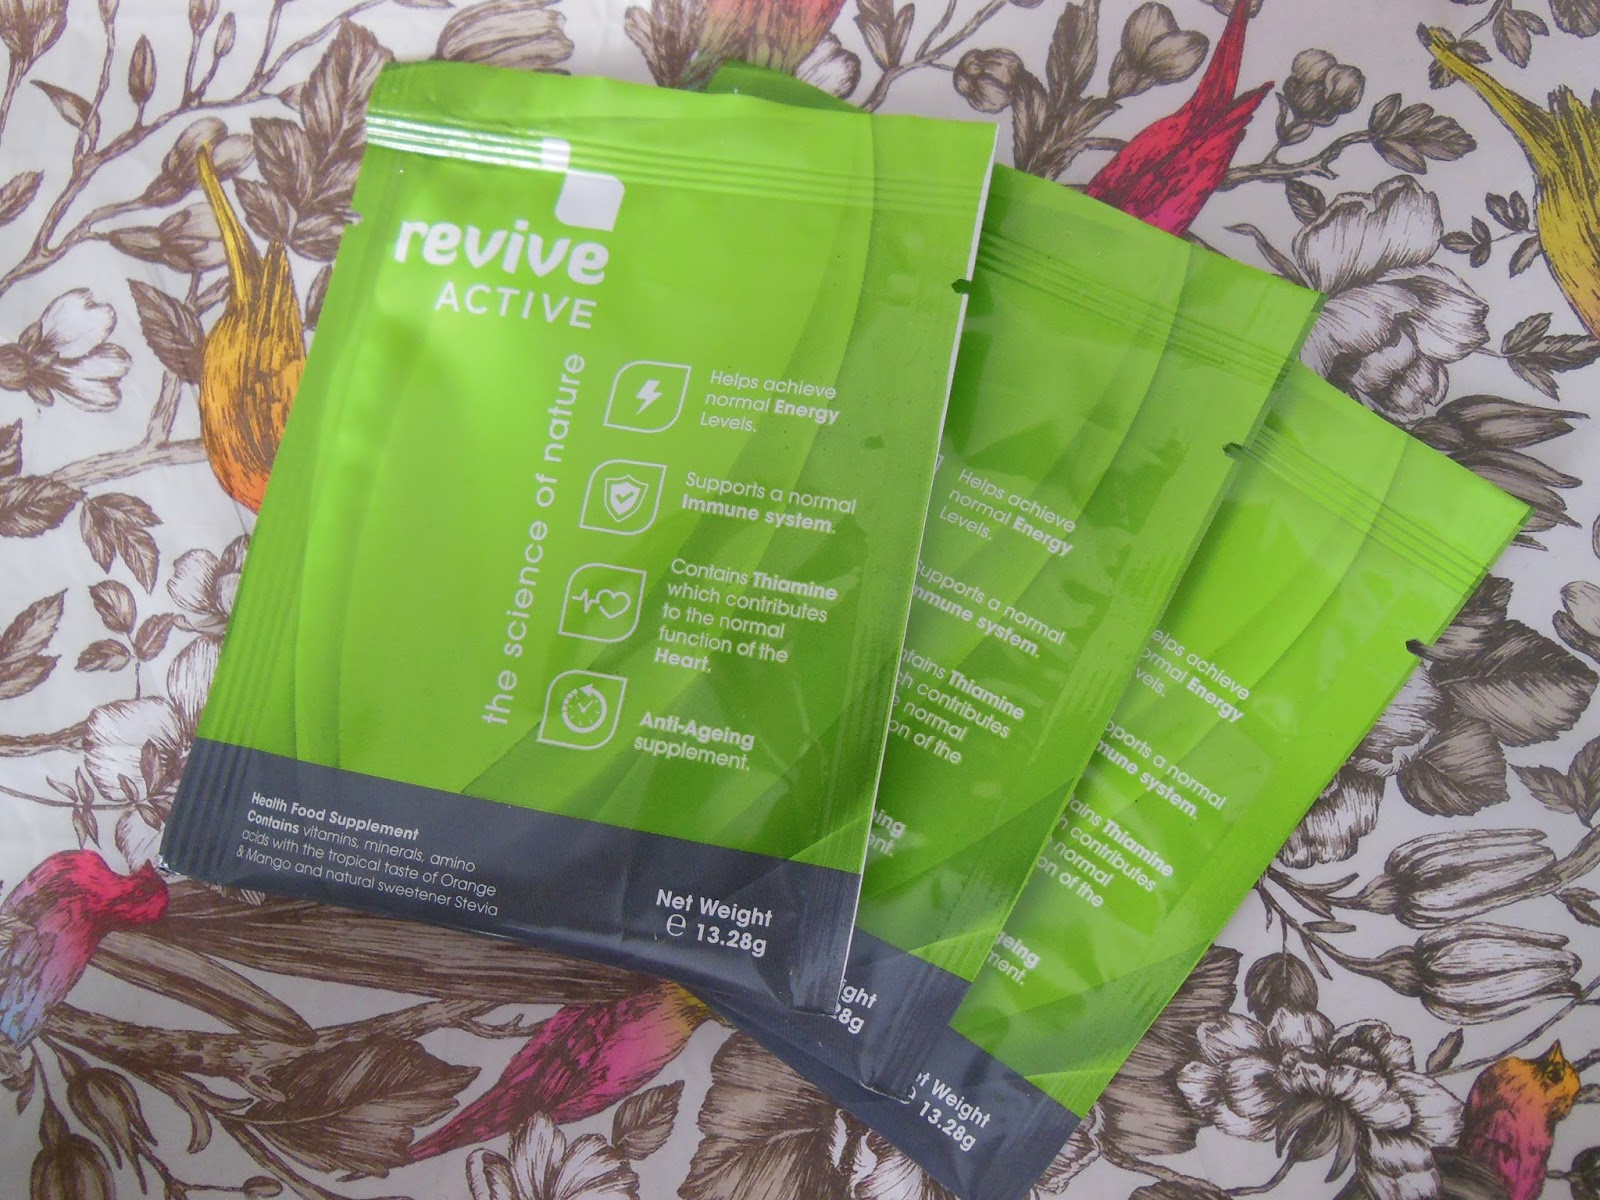 Revive Active food supplement sachets